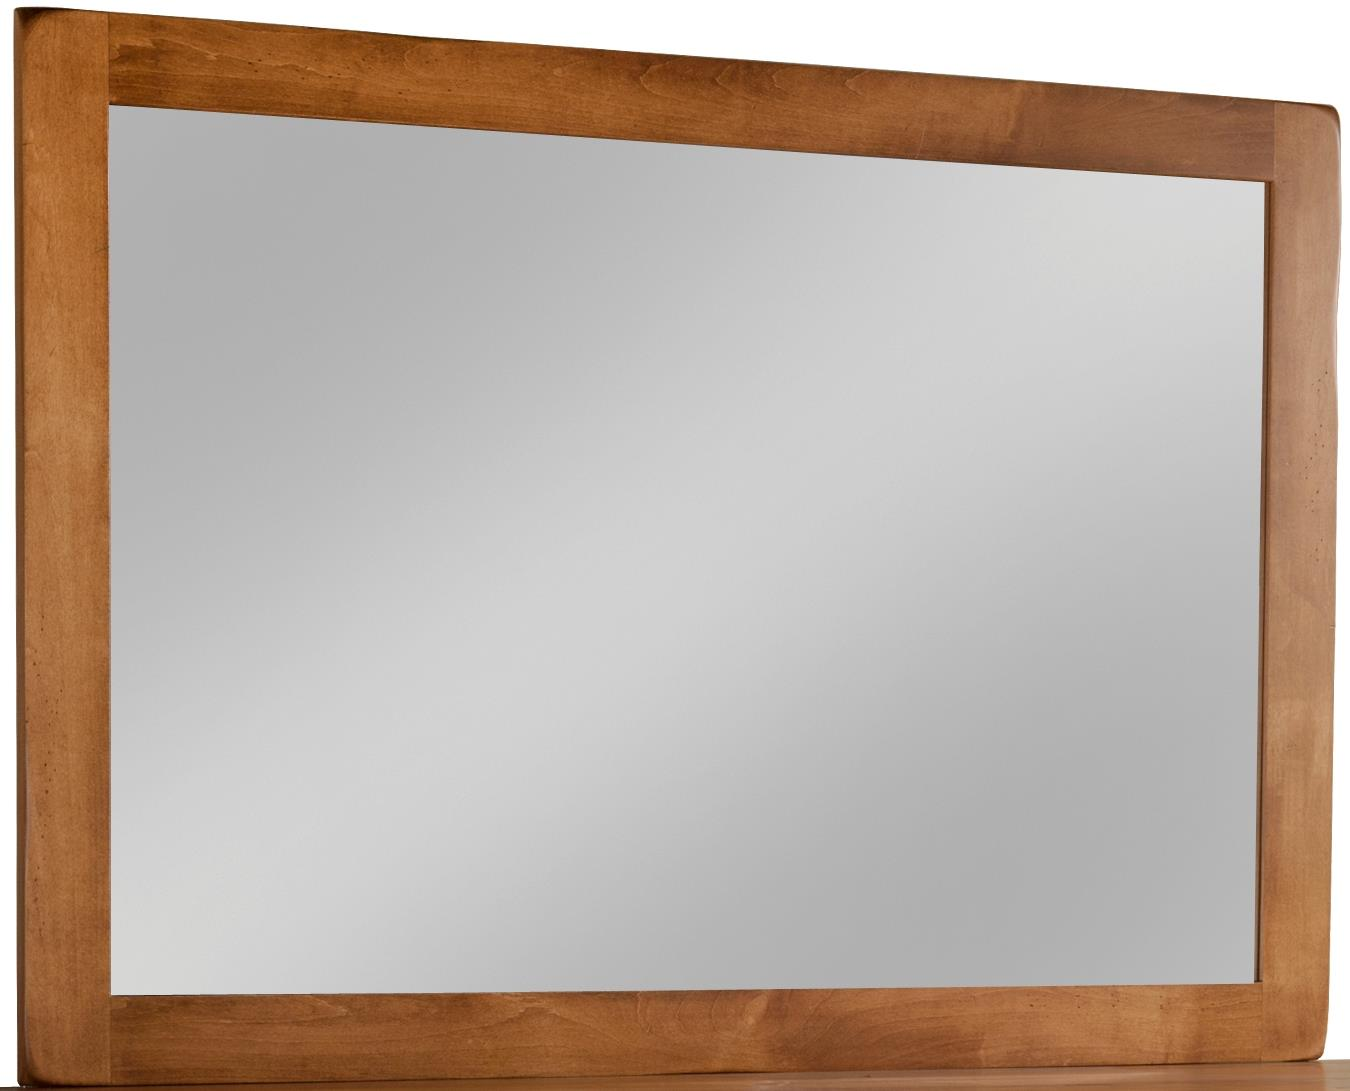 Lewiston Tall Wide Mirror by Daniel's Amish at Saugerties Furniture Mart